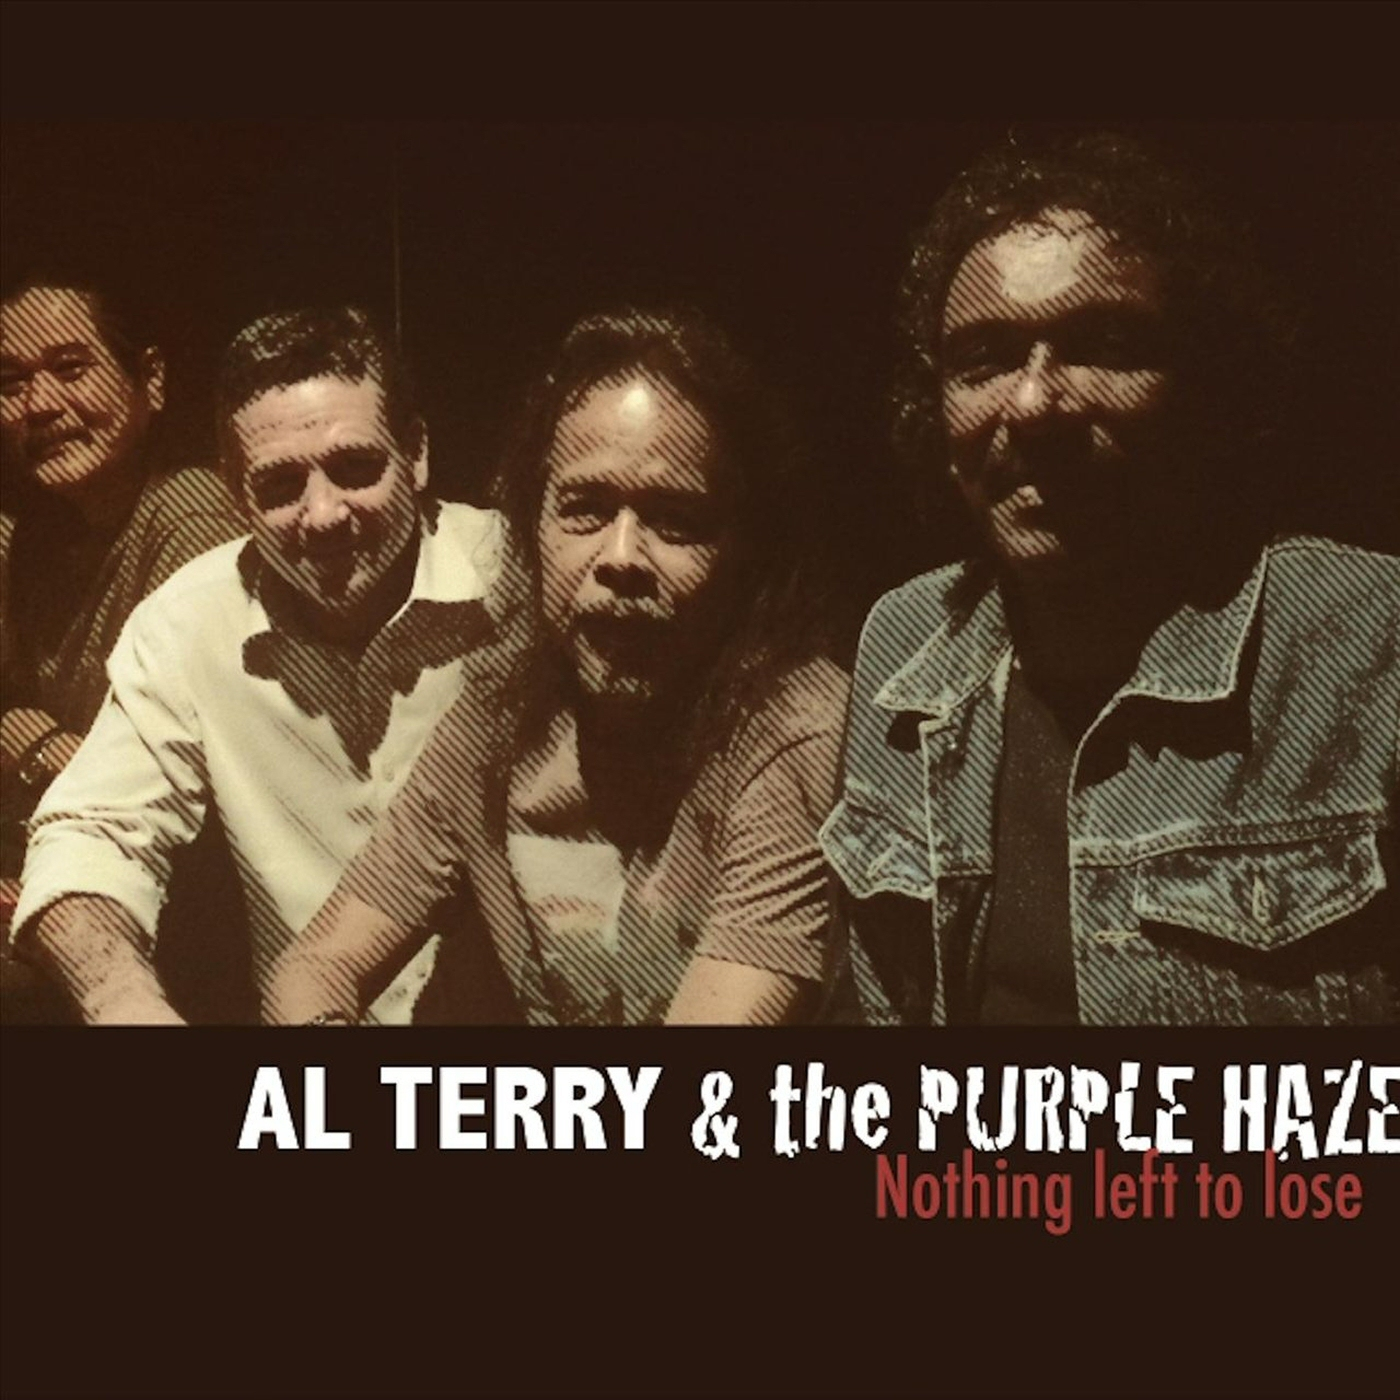 Al Terry & The Purple Haze Blues Band - Nothing Left To Lose